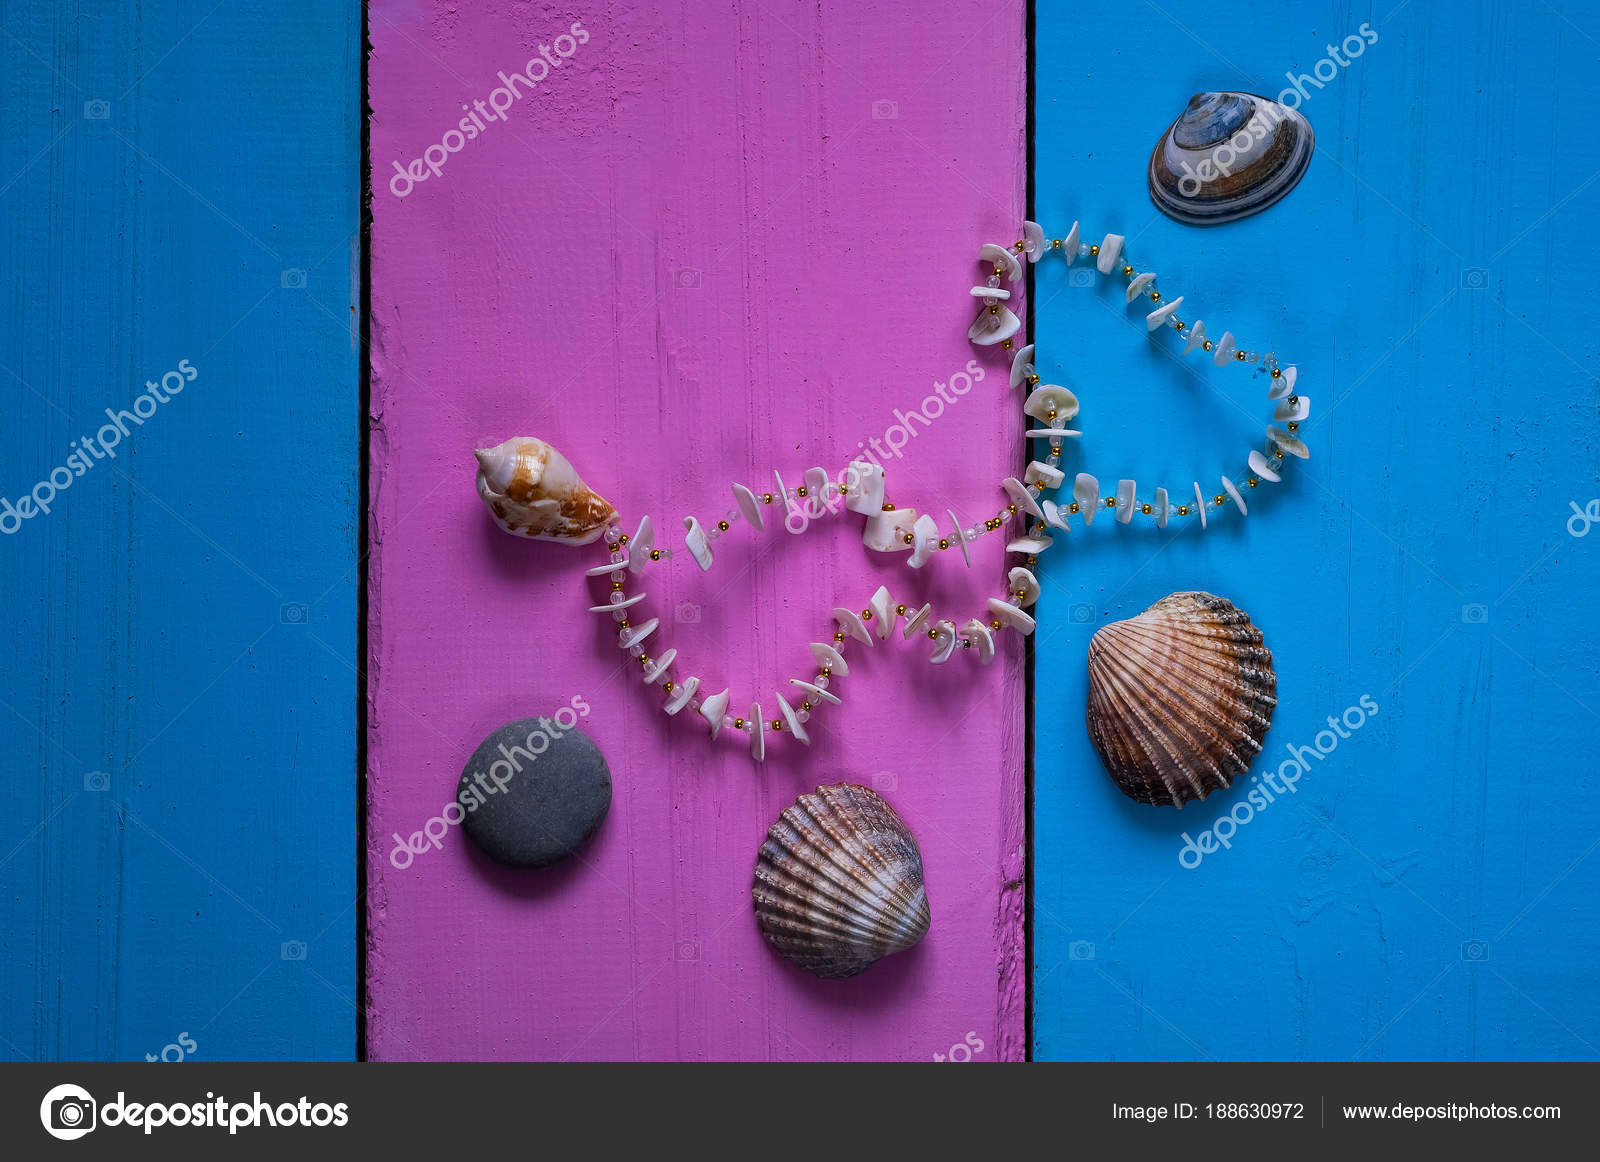 3e27824dcac6 Seashells on a colored background, frames and a glamorous background of two  colors for space